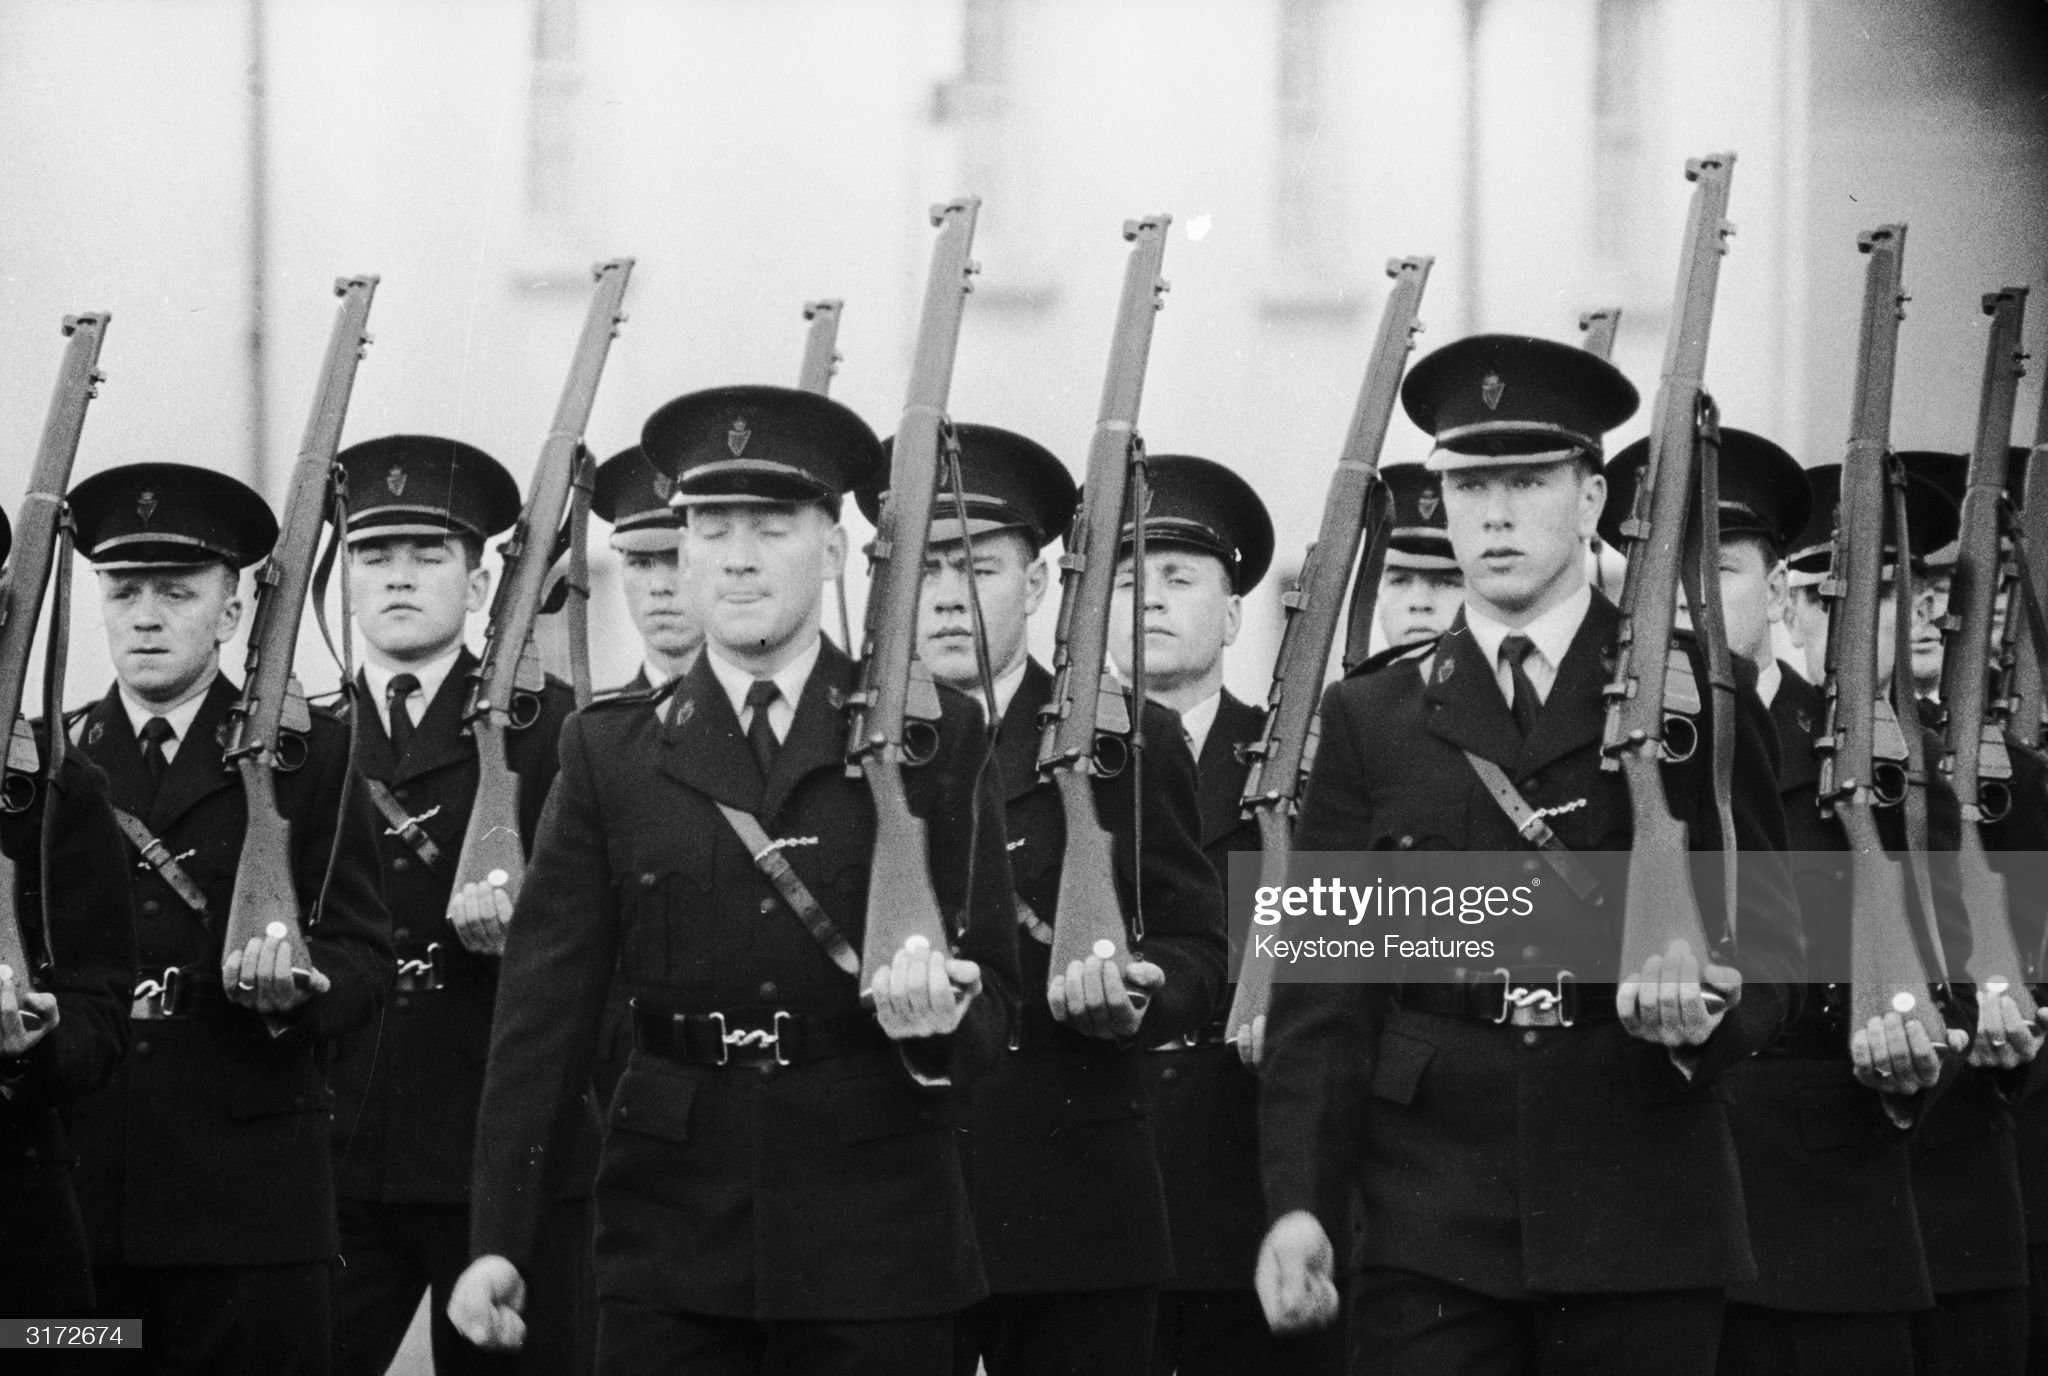 september-1961-members-of-the-royal-ulster-constabulary-on-rifle-in-picture-id3172674